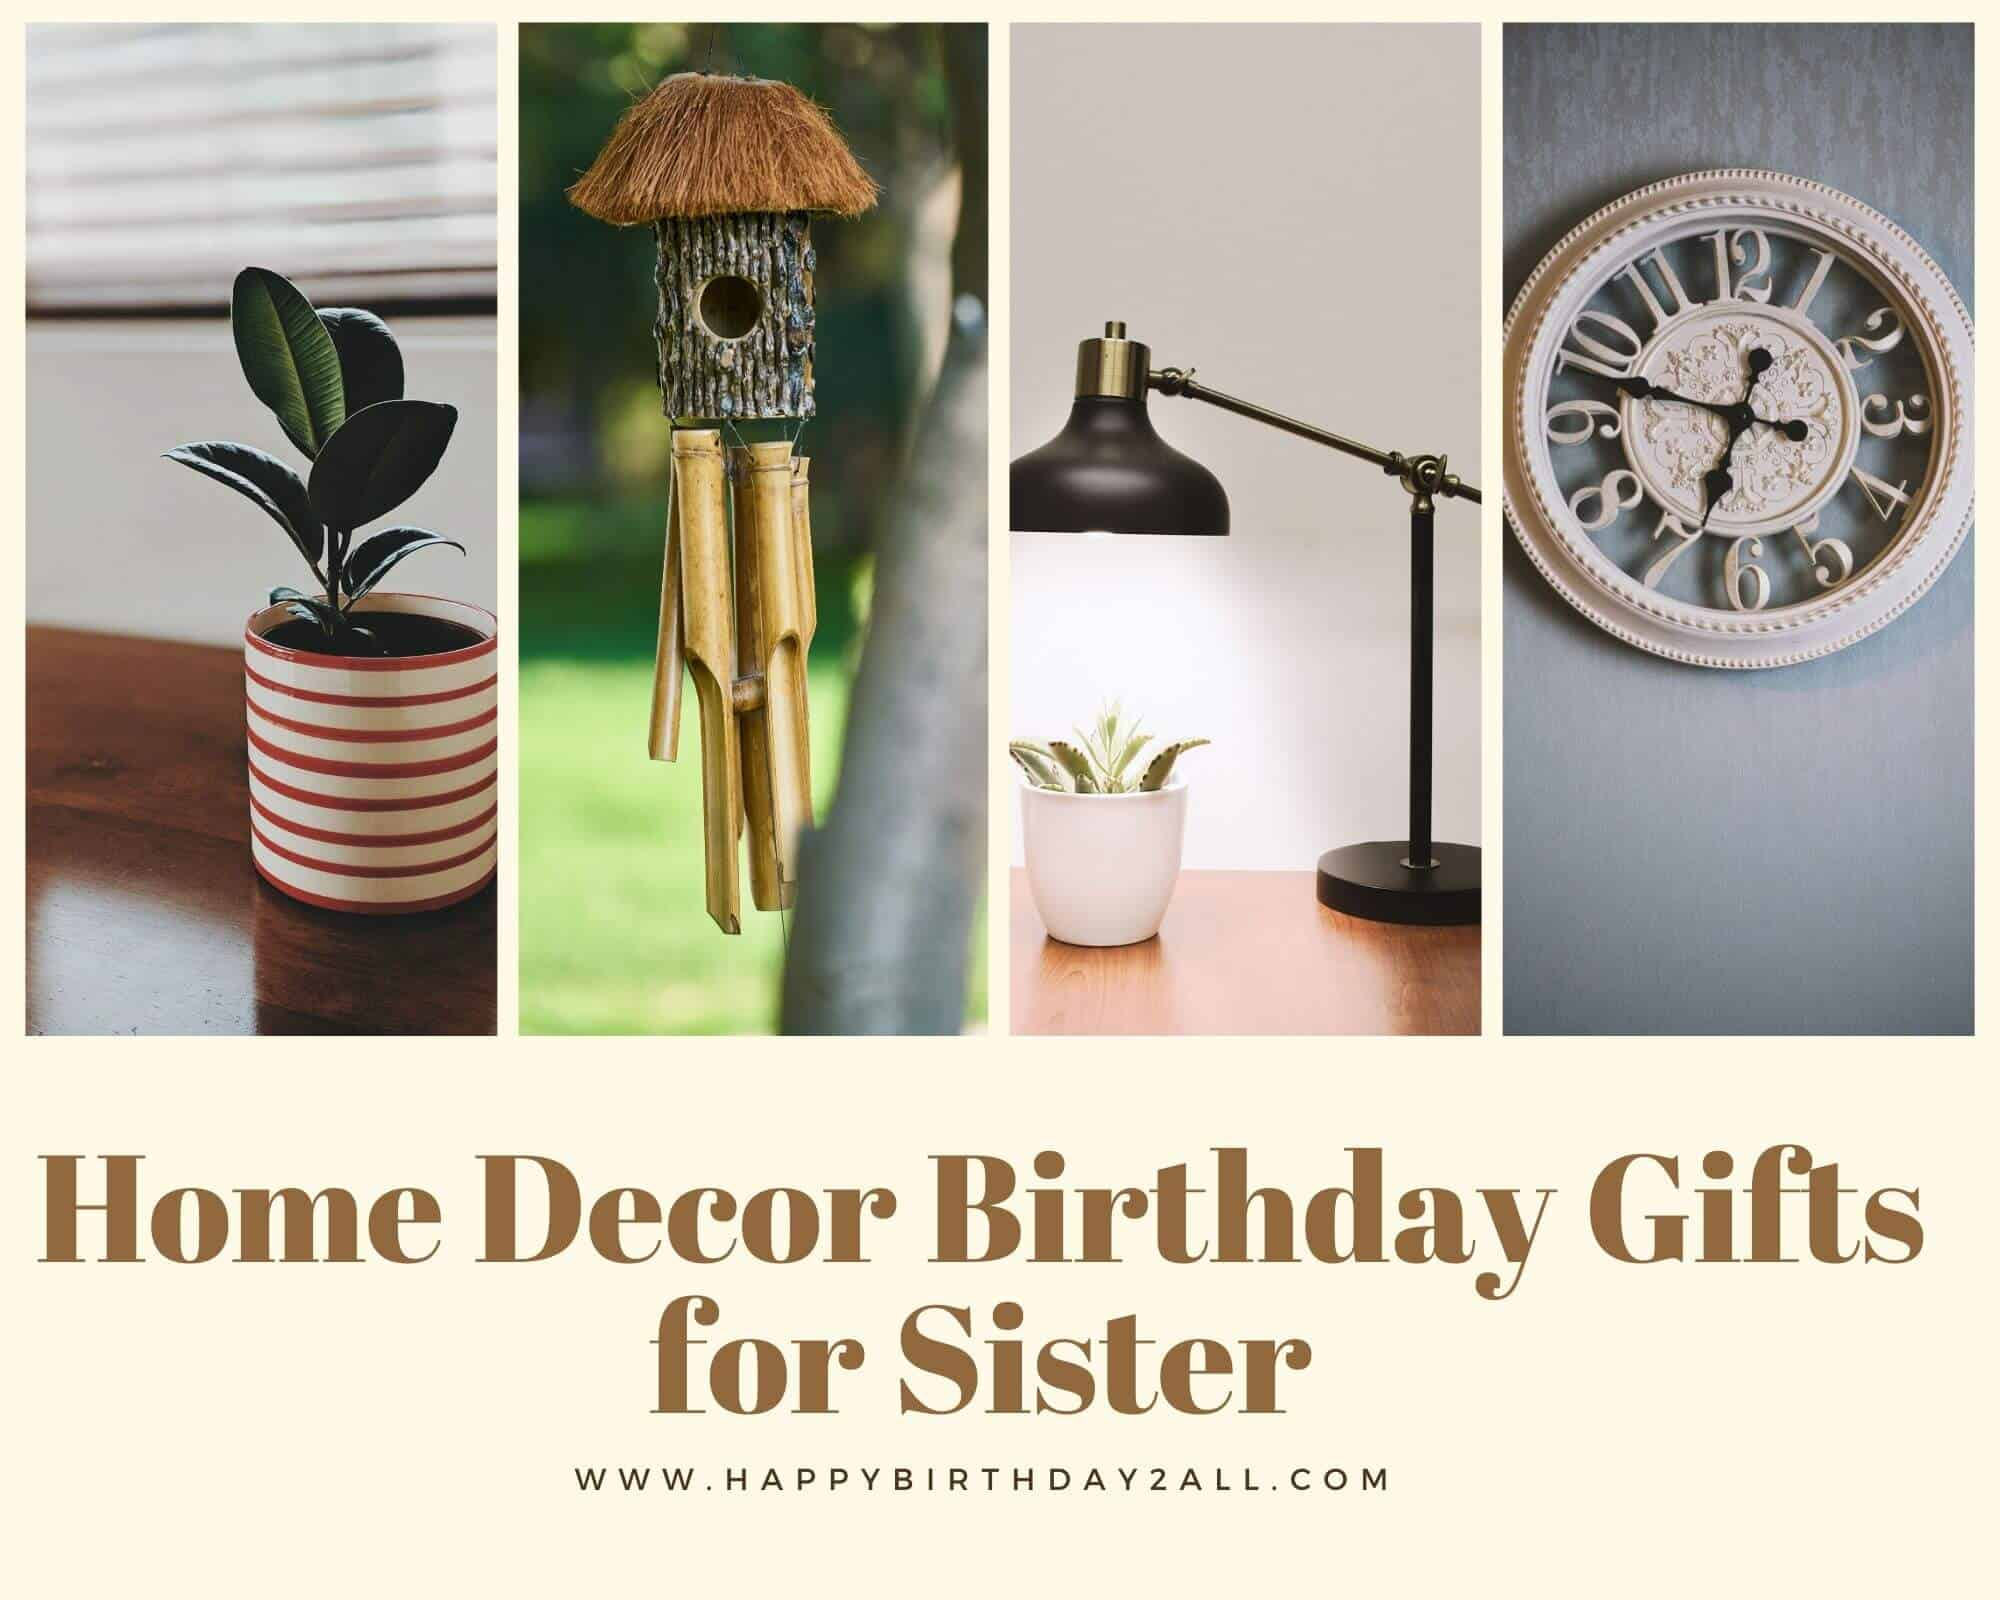 Home Decor Birthday Gifts for Sister